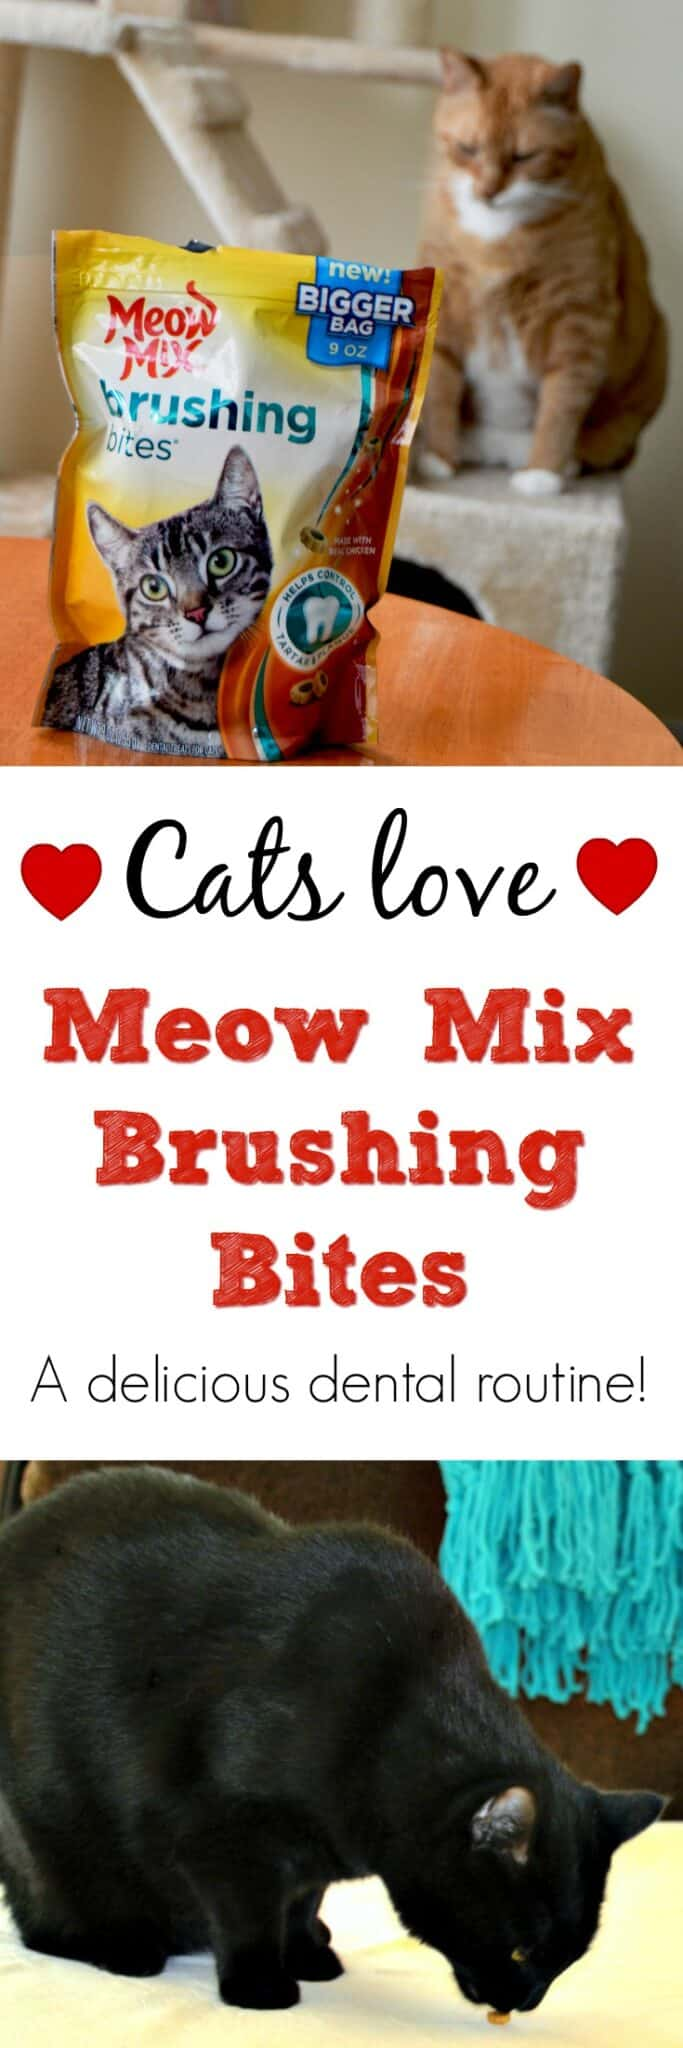 #ad Dental decay can have long-term effects on a cat's health. That's why I gave my cats Meow Mix Brushing Bites, crunchy treats that help reduce plaque and tartar.